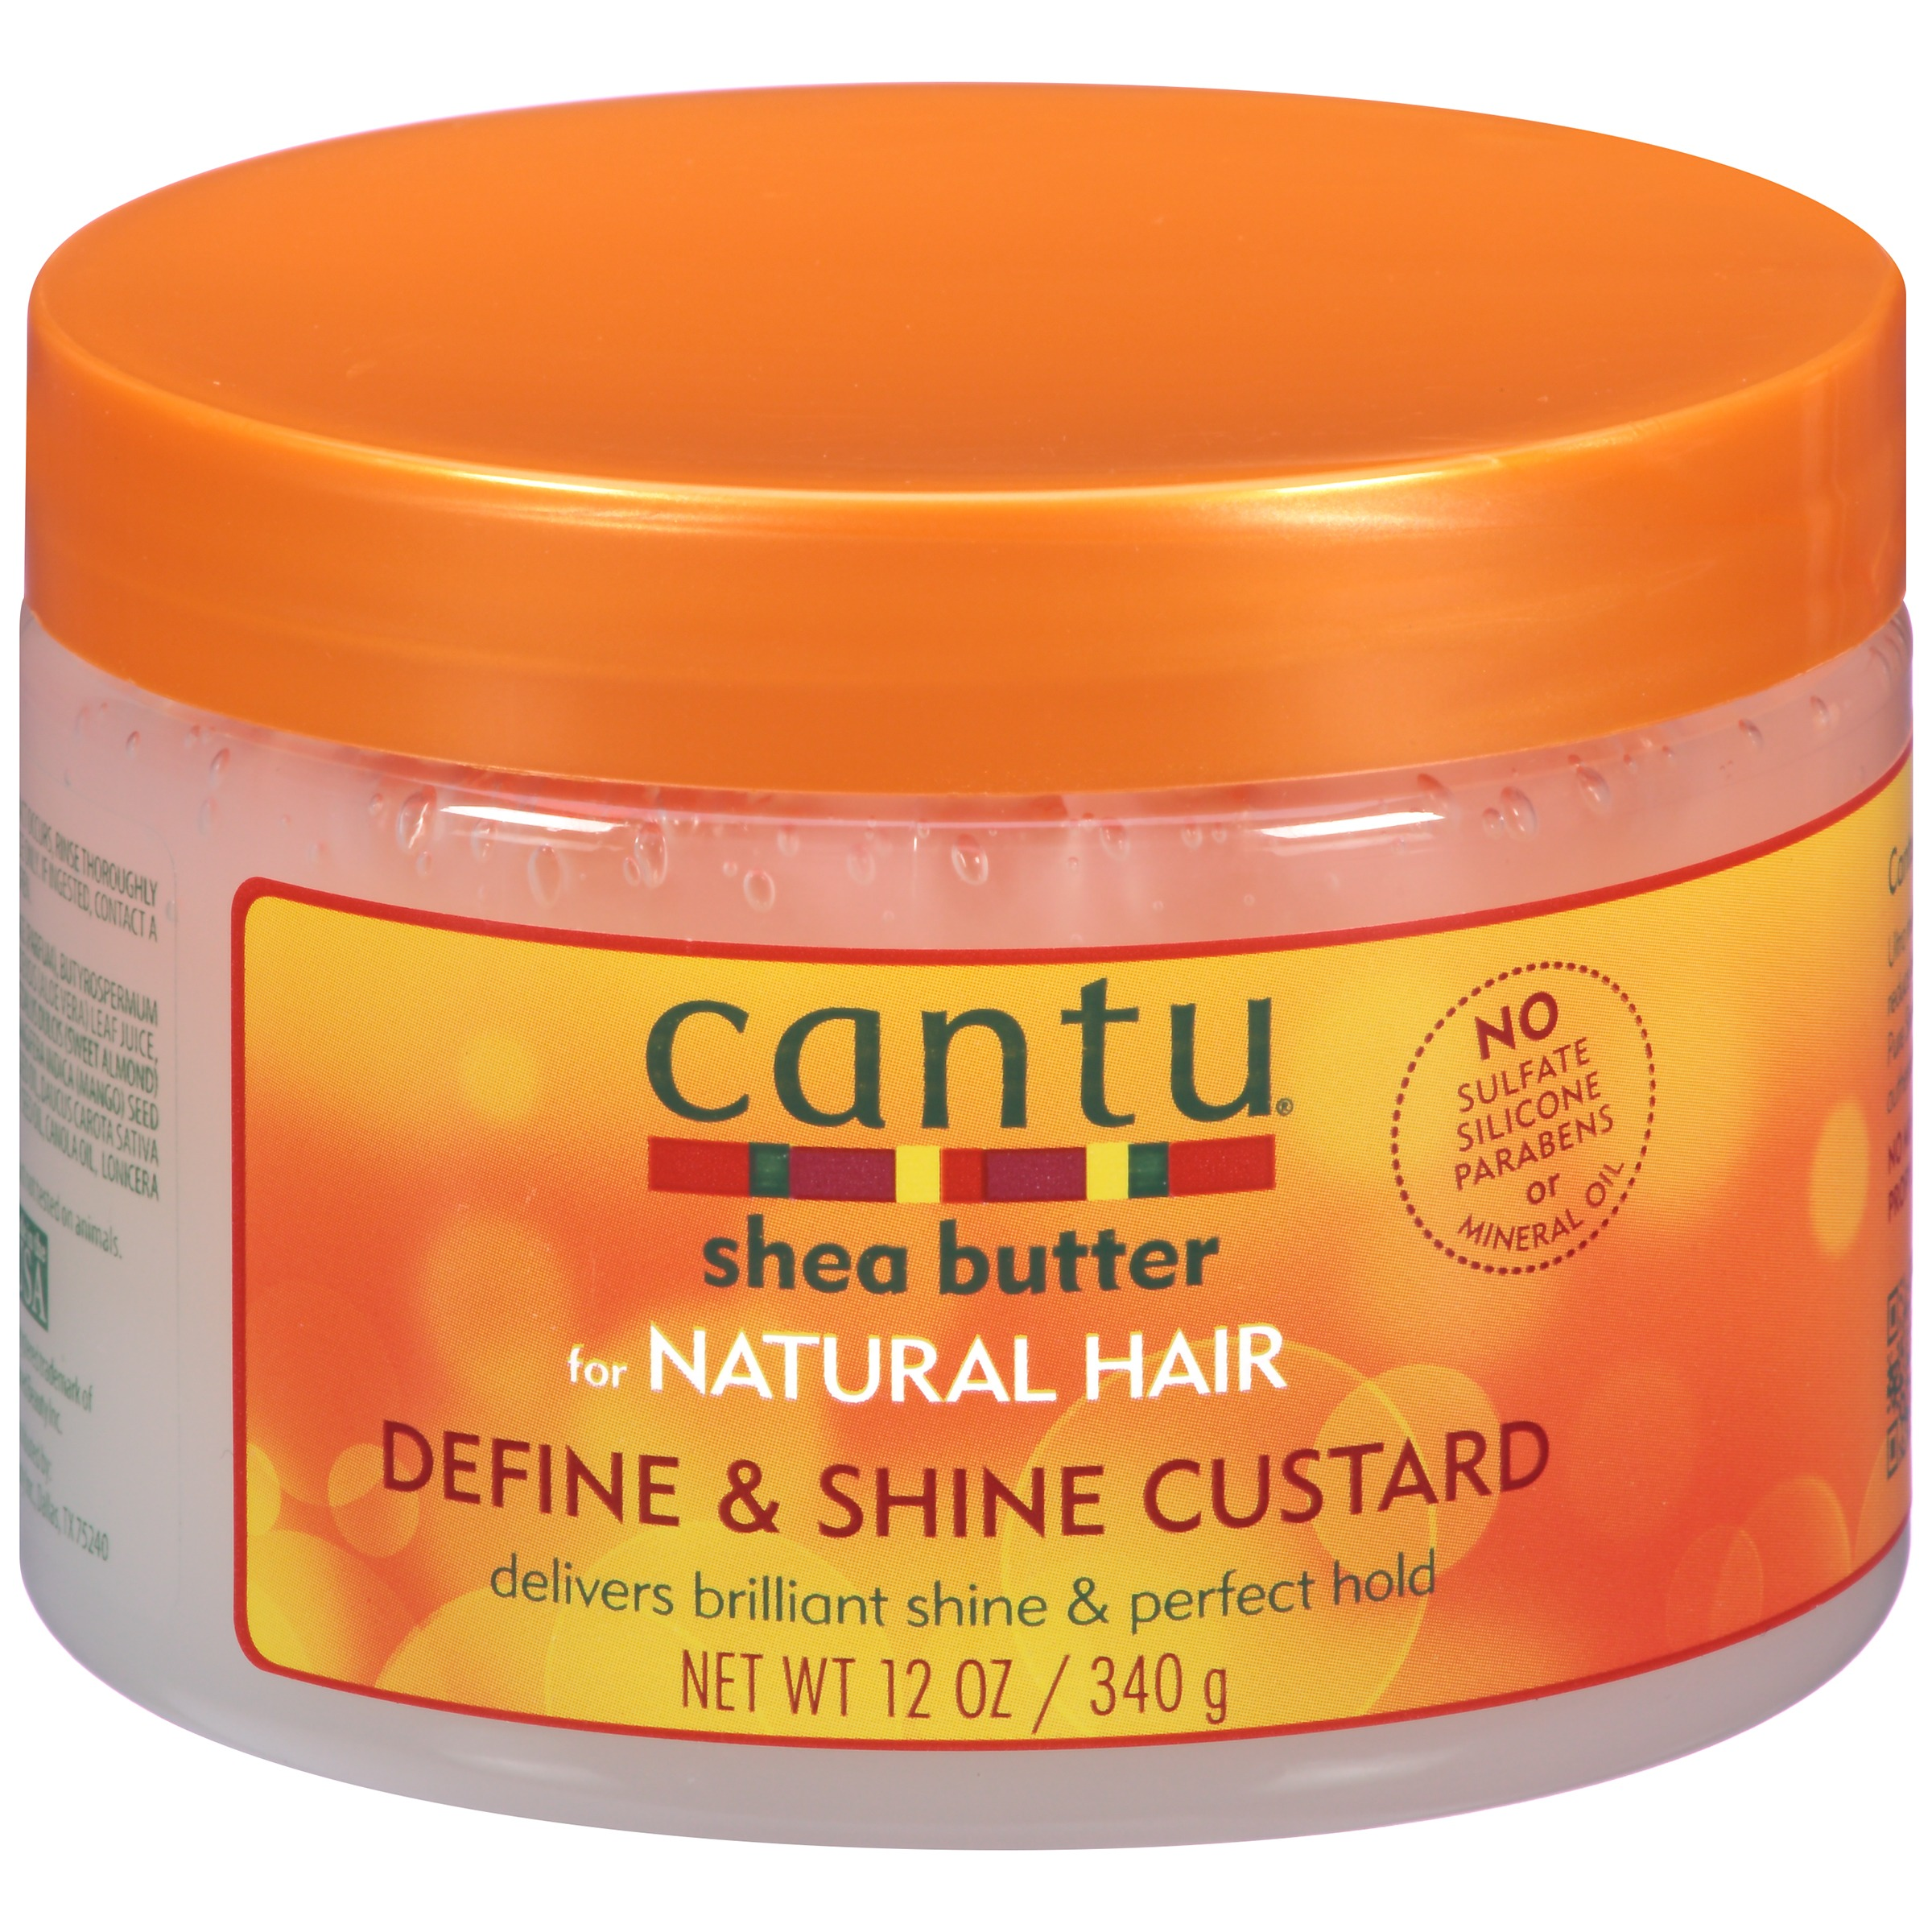 Cantu Shea Butter for Natural Define & Shine Custard,12 oz